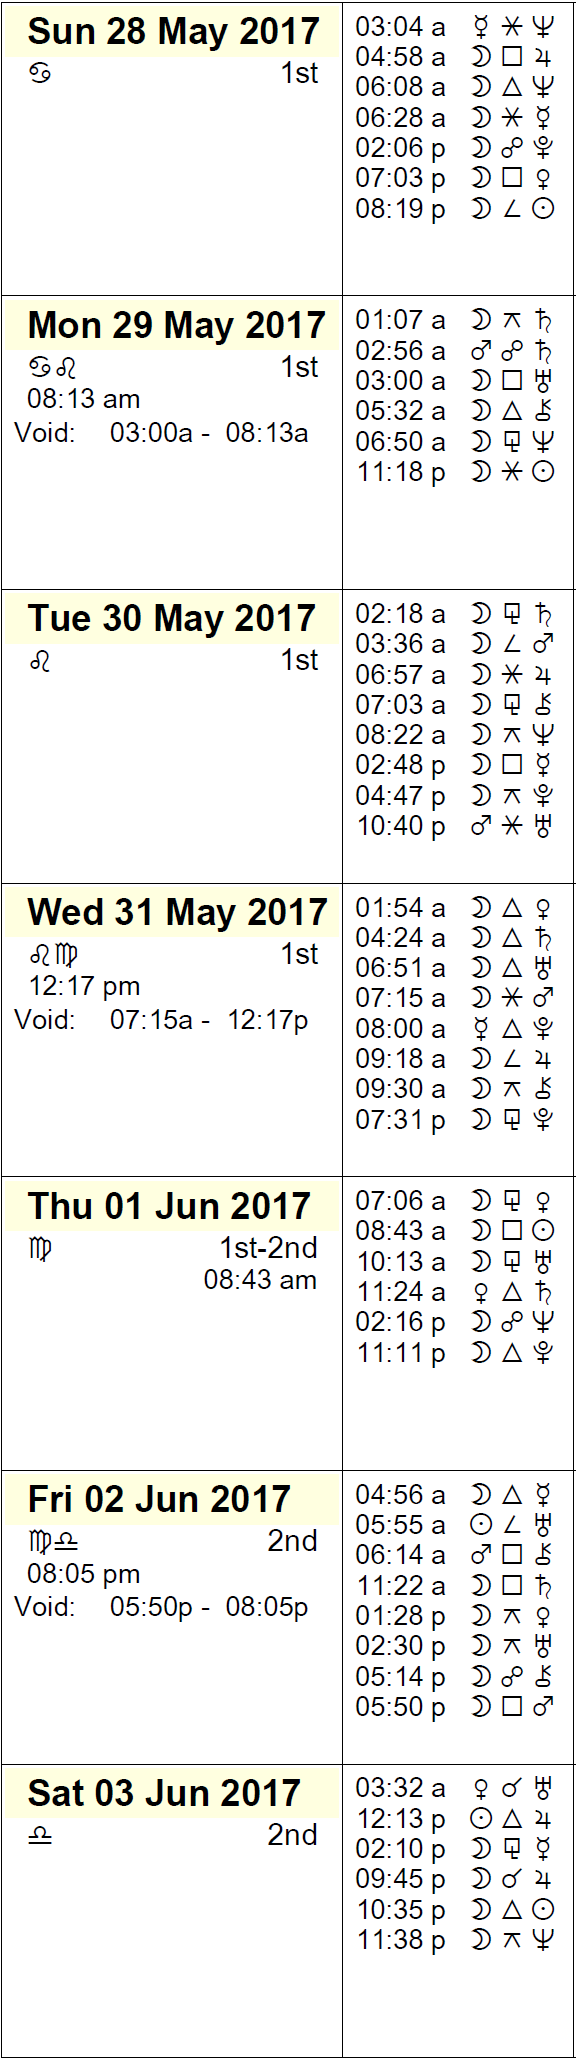 This Week in Astrology Calendar - May 28 to June 3, 2017